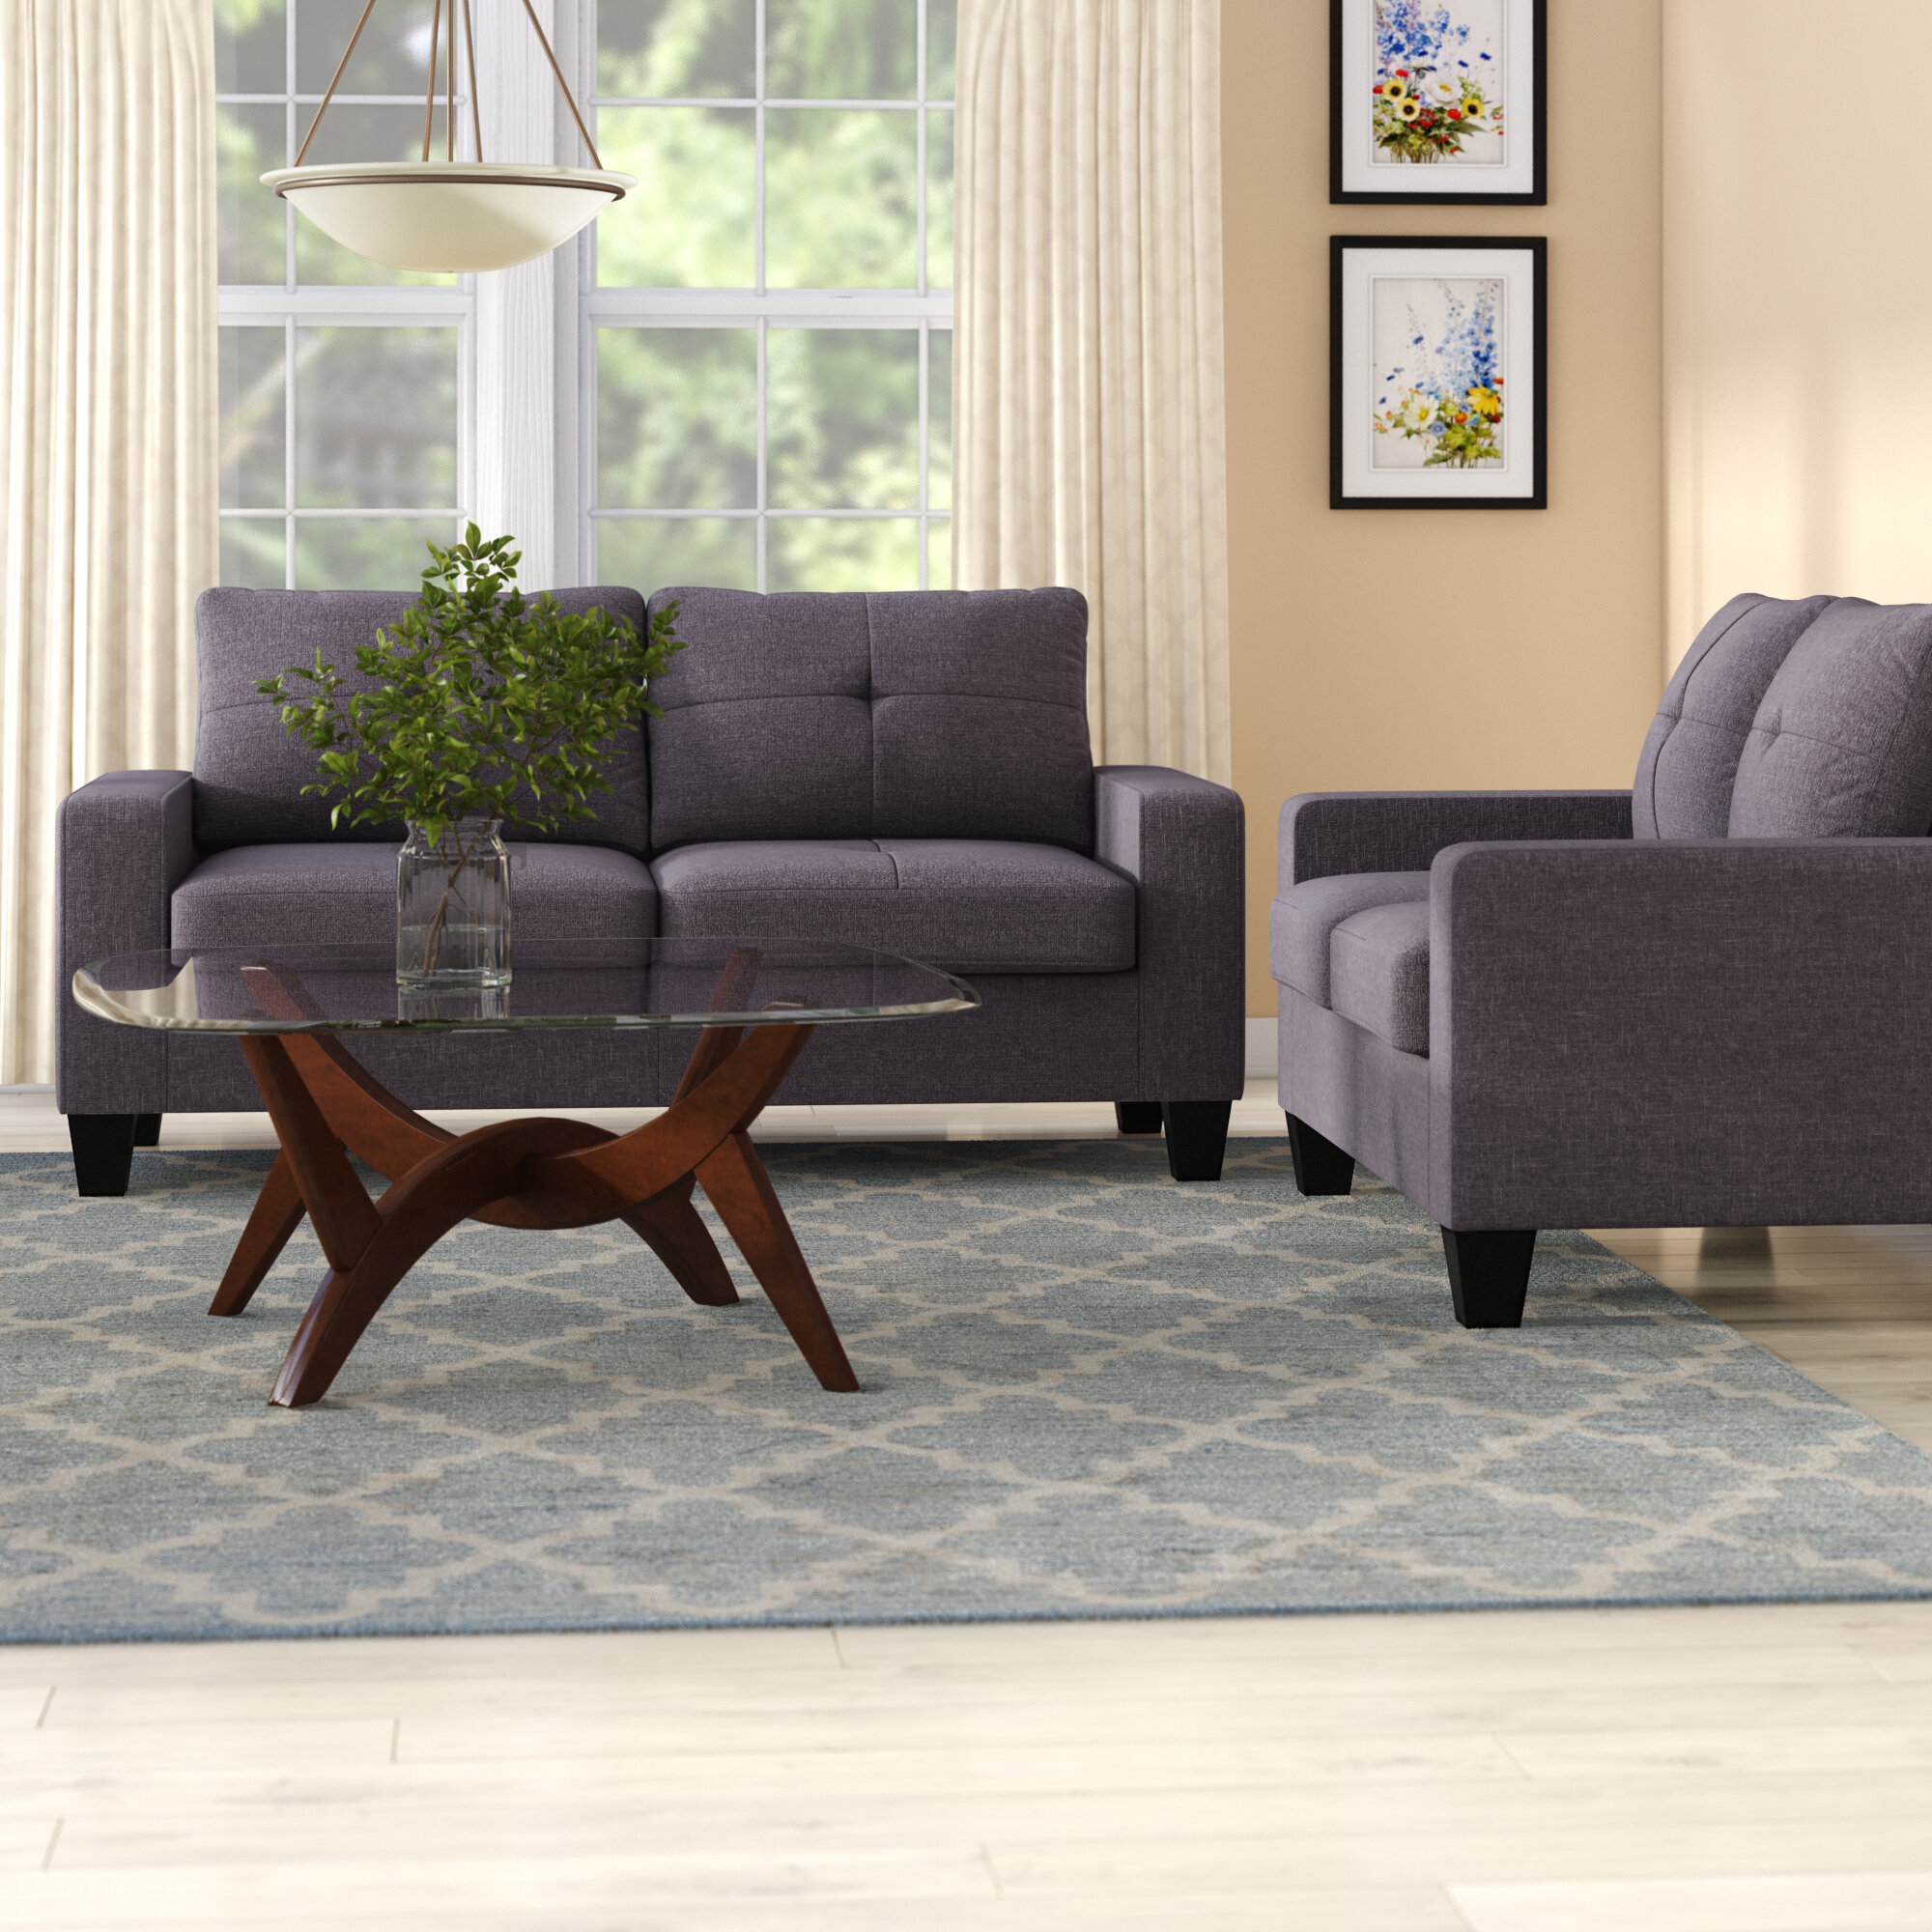 Astonishing 2 Piece Living Room Sets Wayfair Home Interior And Landscaping Ologienasavecom